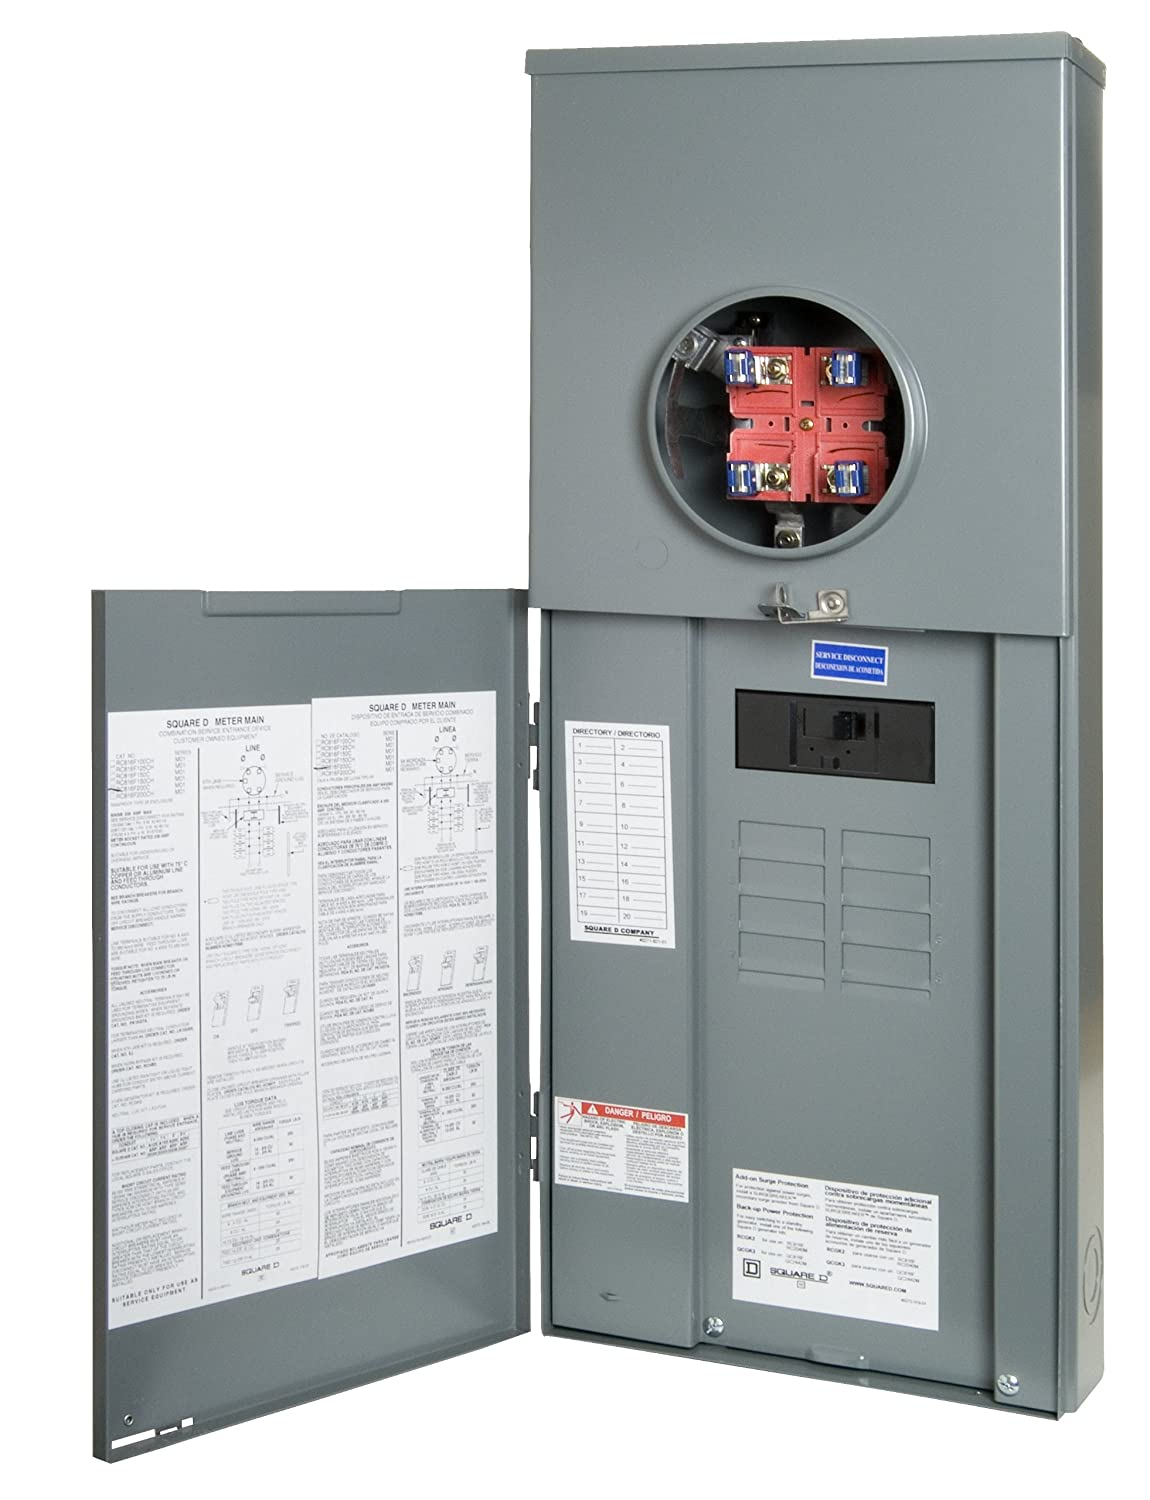 Square D By Schneider Electric Rc816f200c Homeline 200 Amp Main Two Pole 30 Circuit Breaker Hom230cp 8 Space 16 Outdoor Overhead Underground Csed Panels